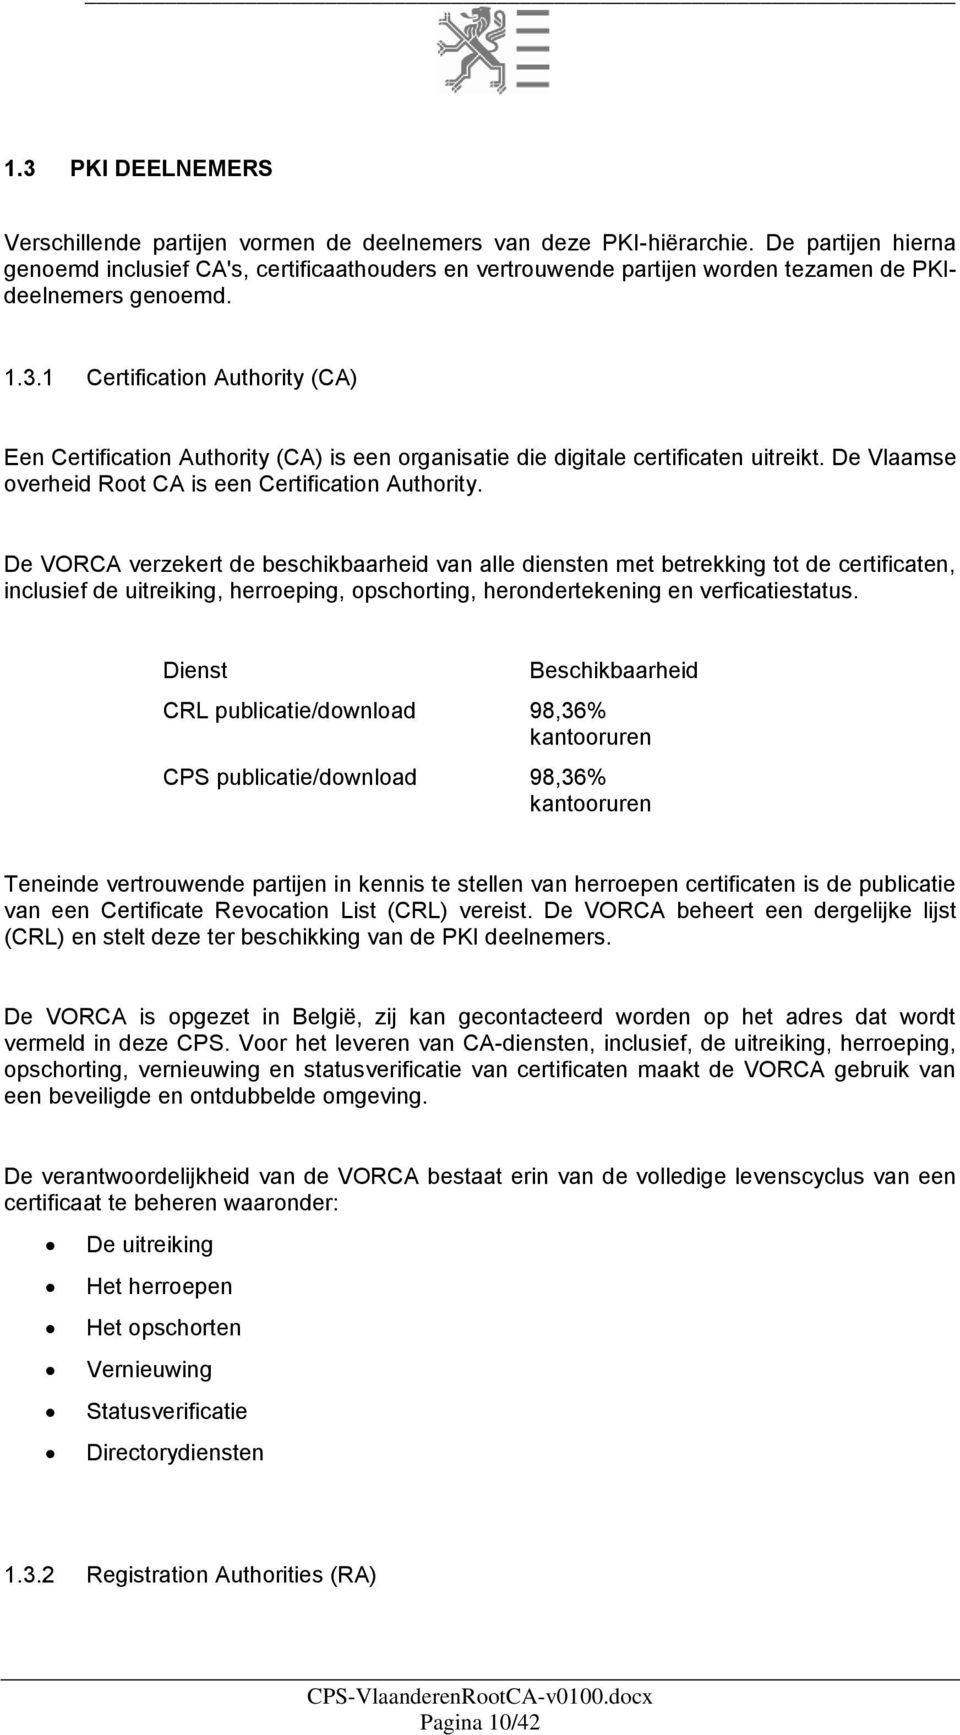 1 Certification Authority (CA) Een Certification Authority (CA) is een organisatie die digitale certificaten uitreikt. De Vlaamse overheid Root CA is een Certification Authority.